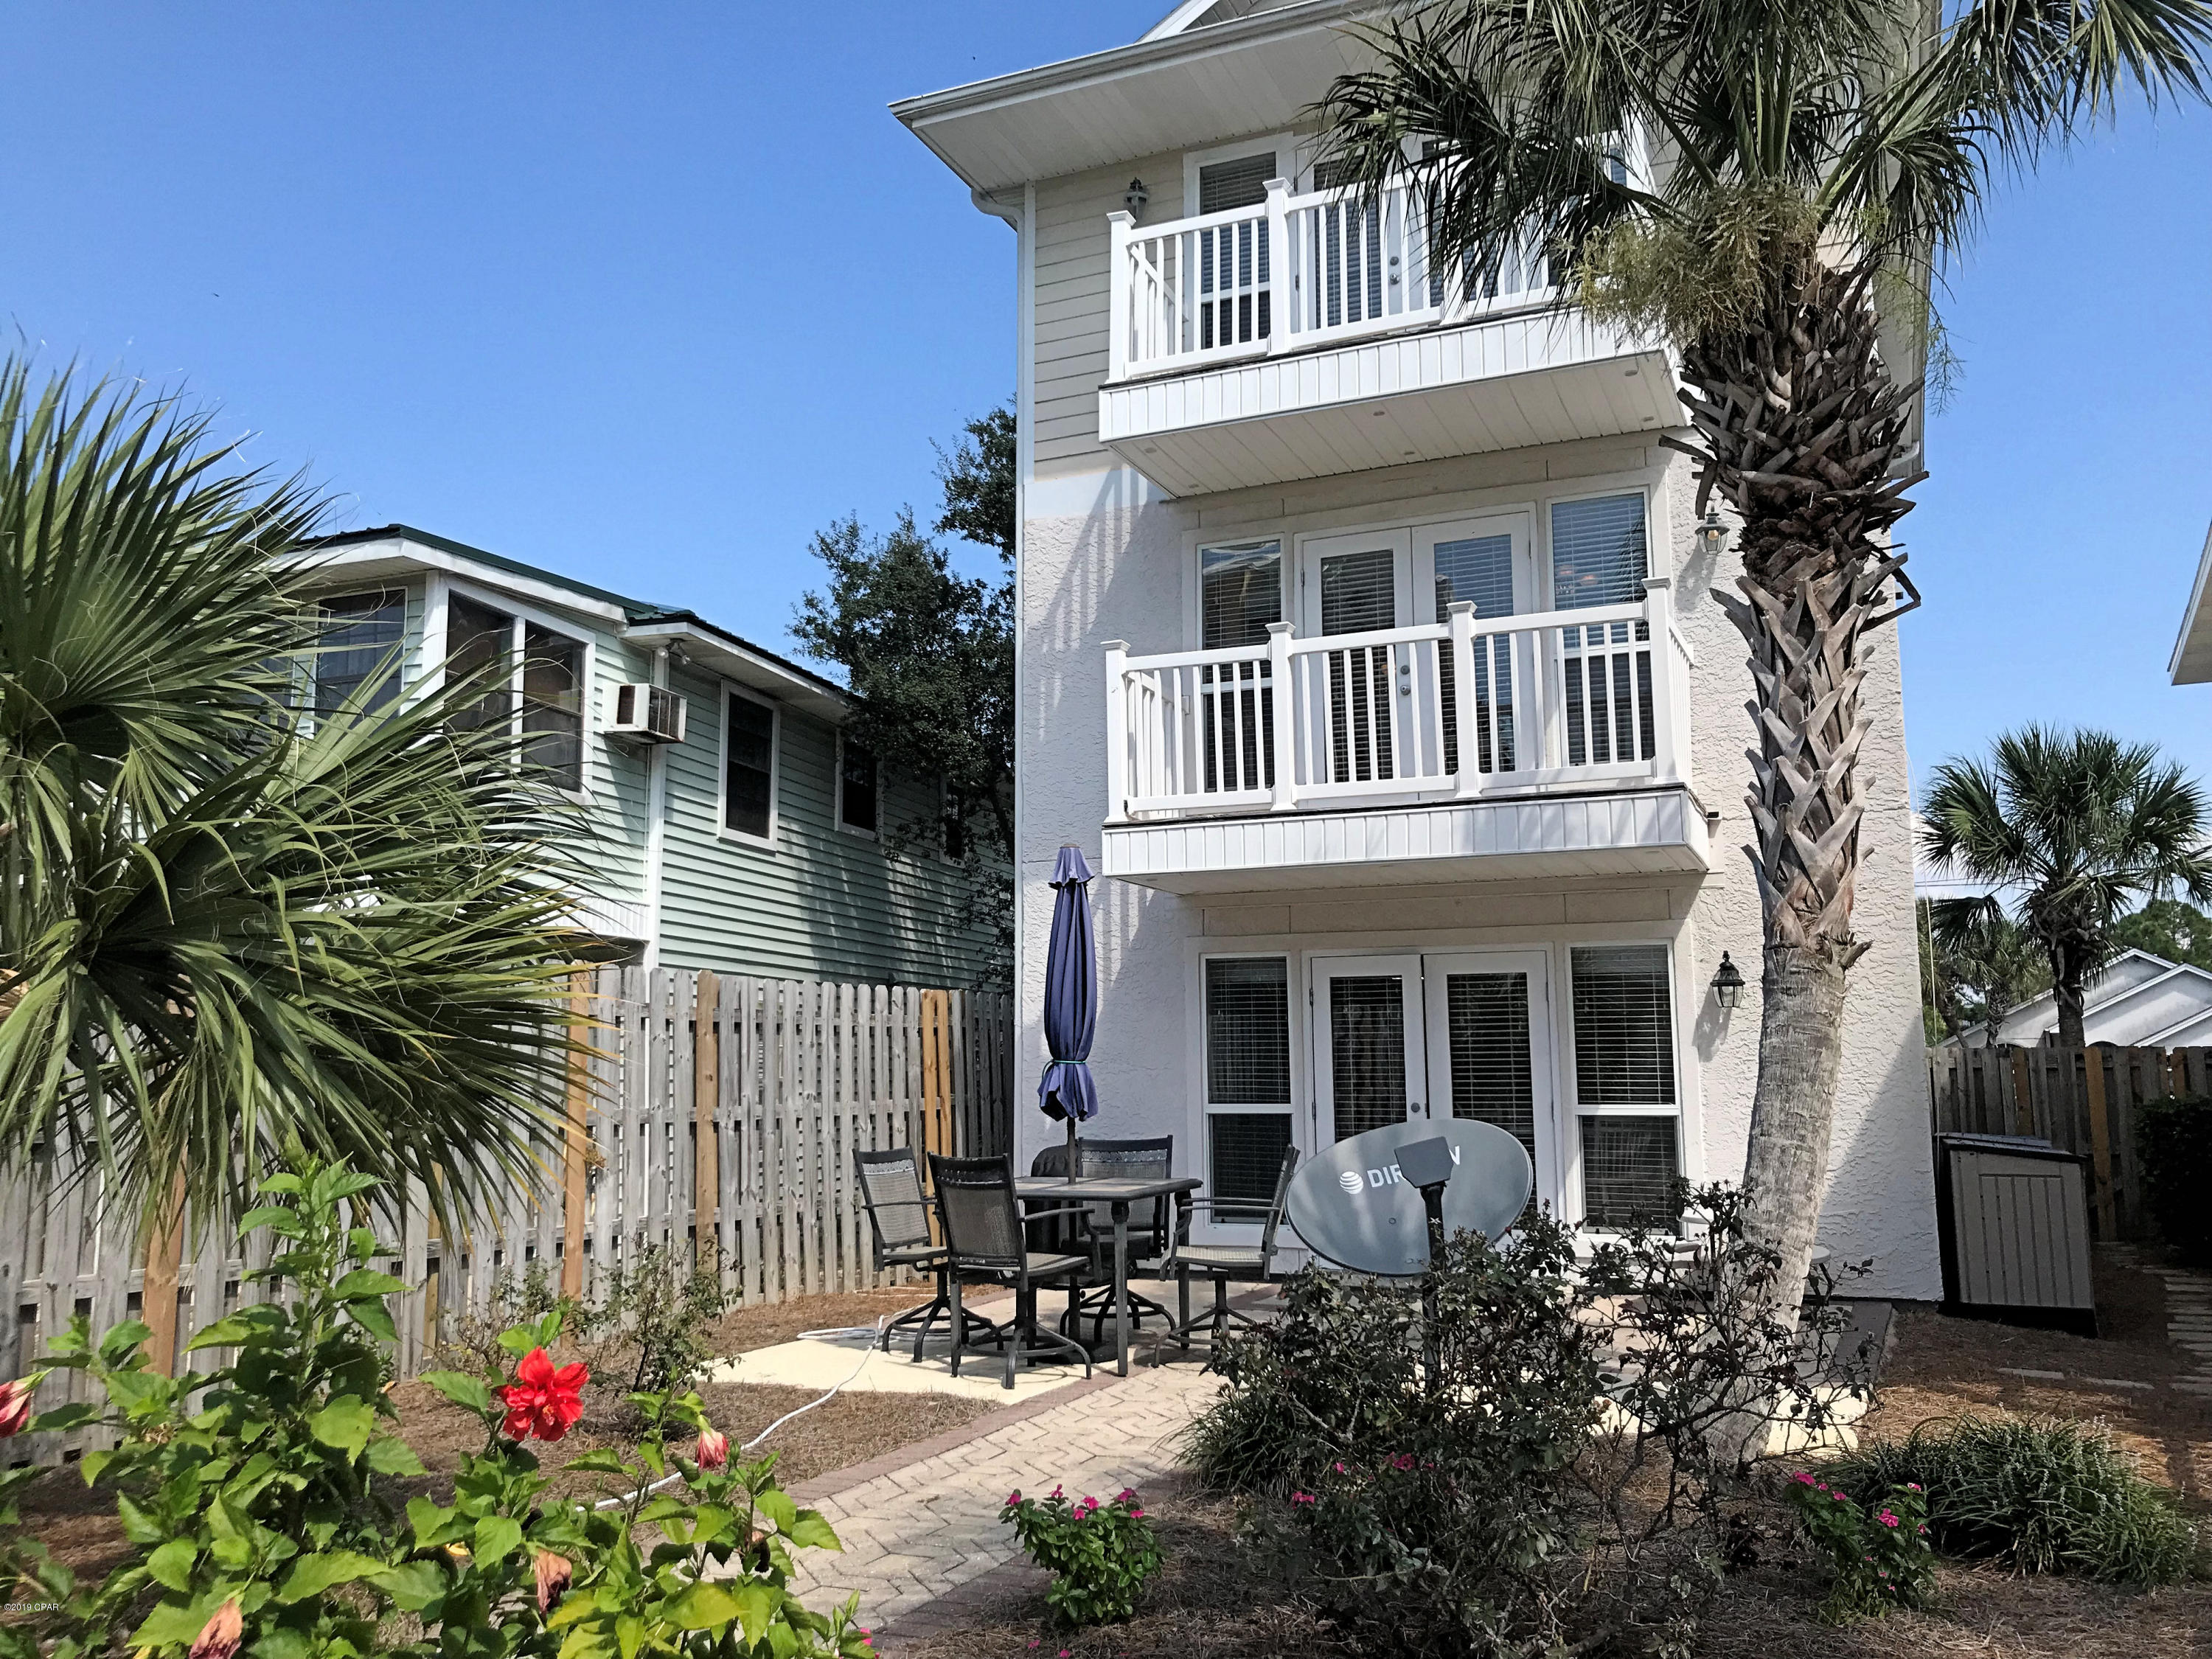 MLS Property 689461 for sale in Panama City Beach